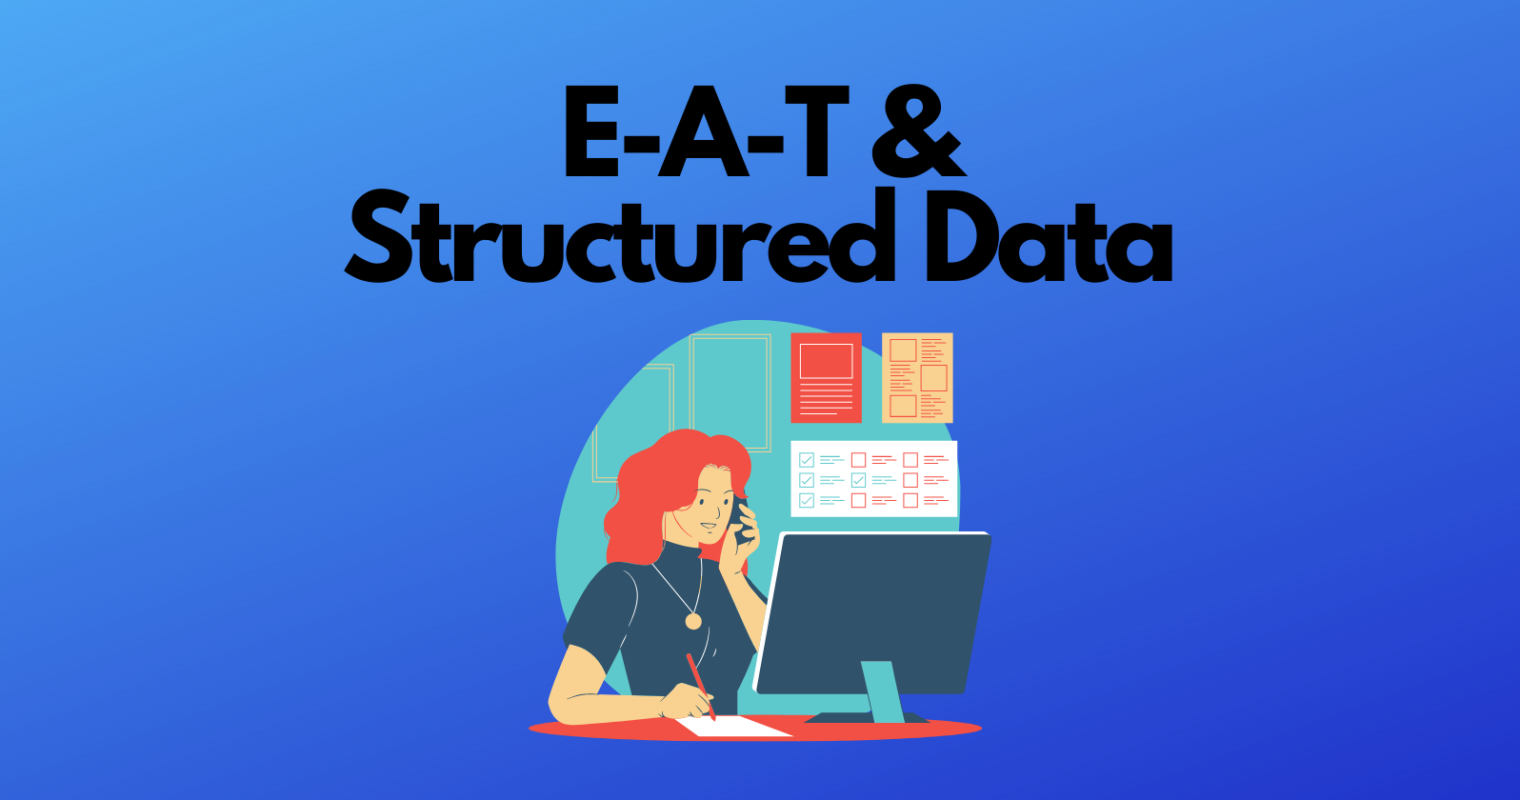 How to Use Structured Data to Support E-A-T